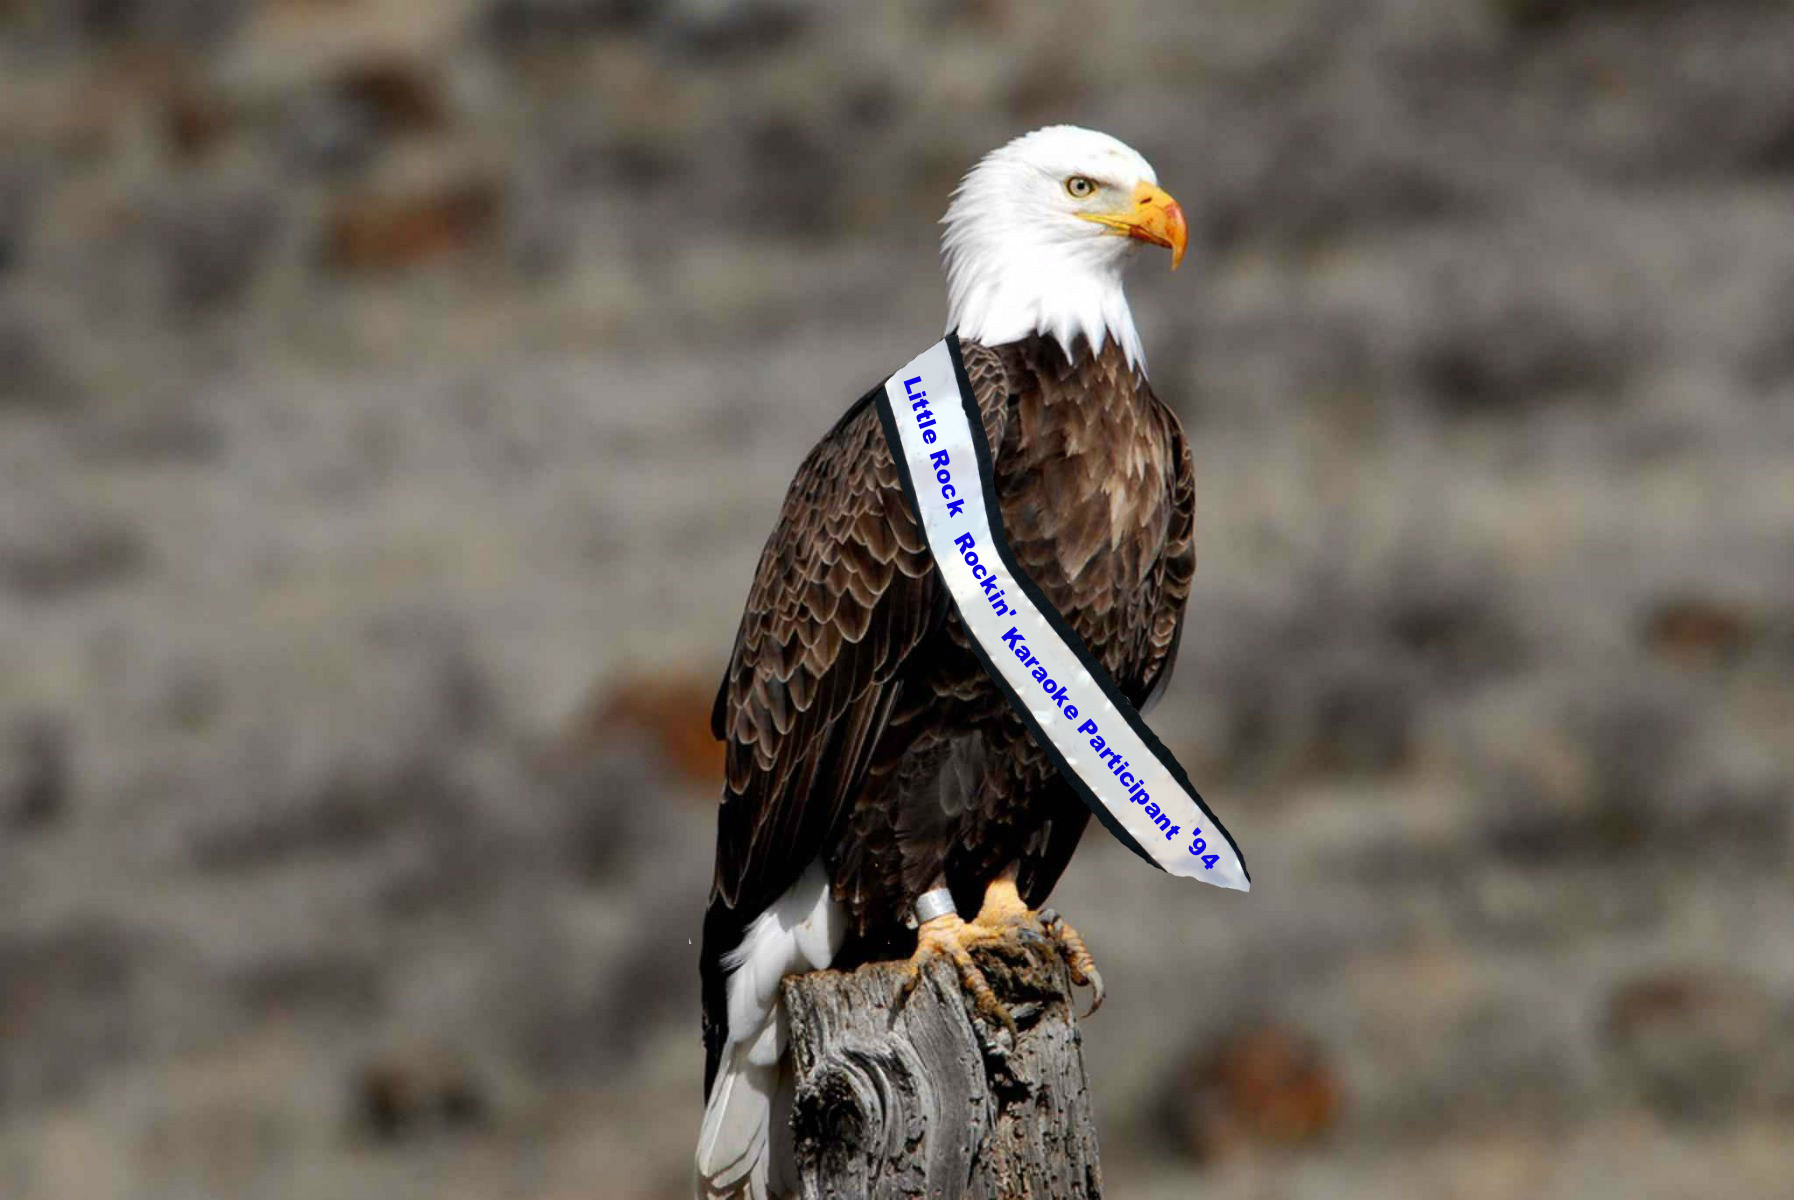 How Did This Bald Eagle Get Snubbed For The ESPN Courage Award ...